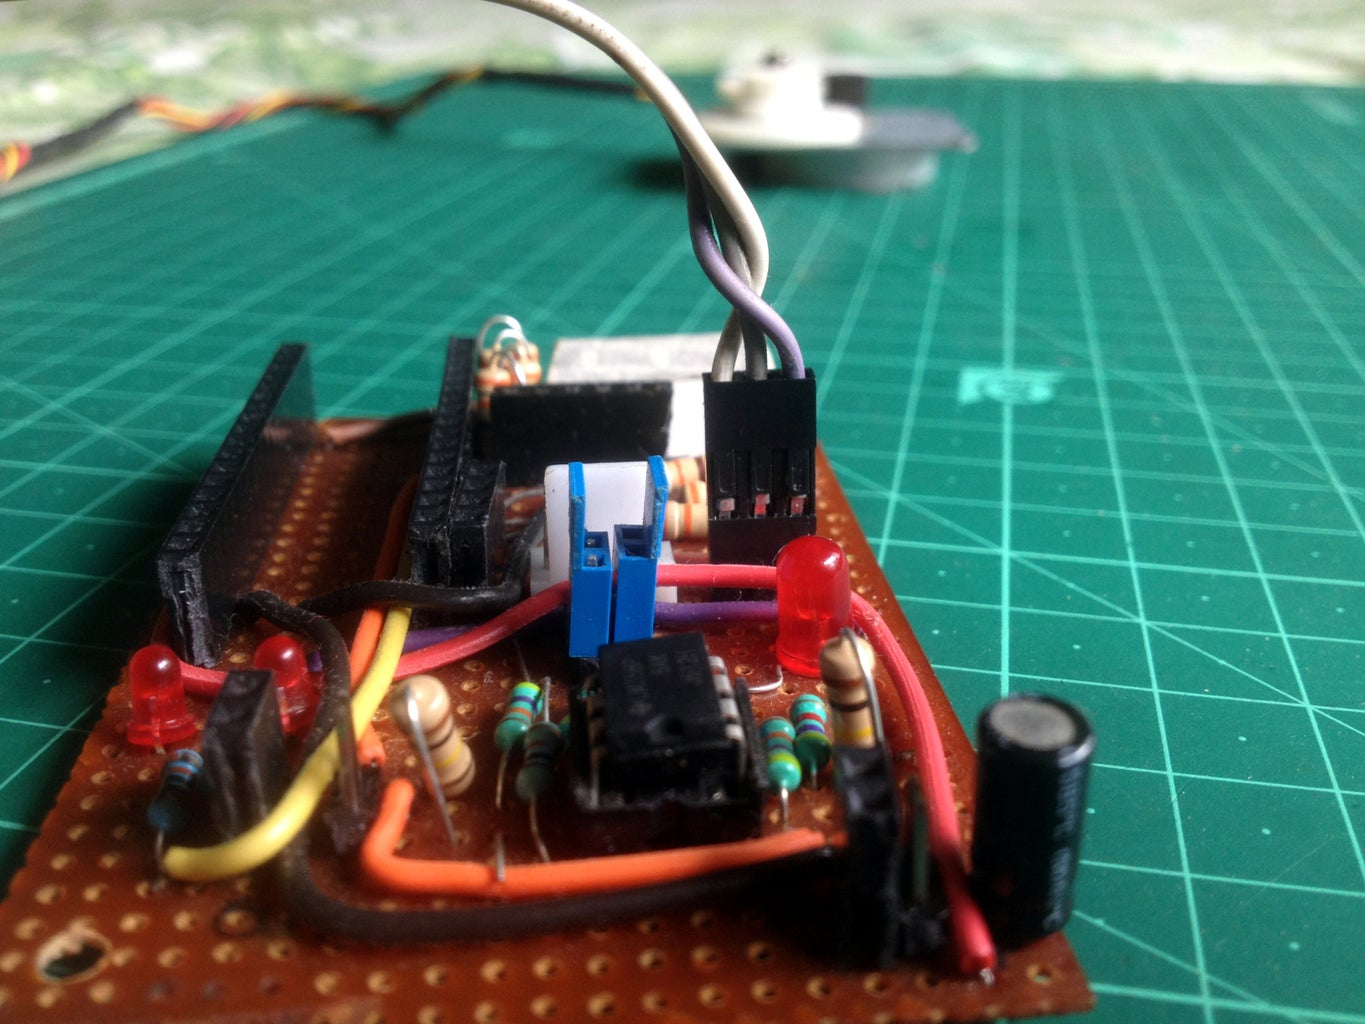 Connect the Controller Stepper Motor to the Amplifier Board